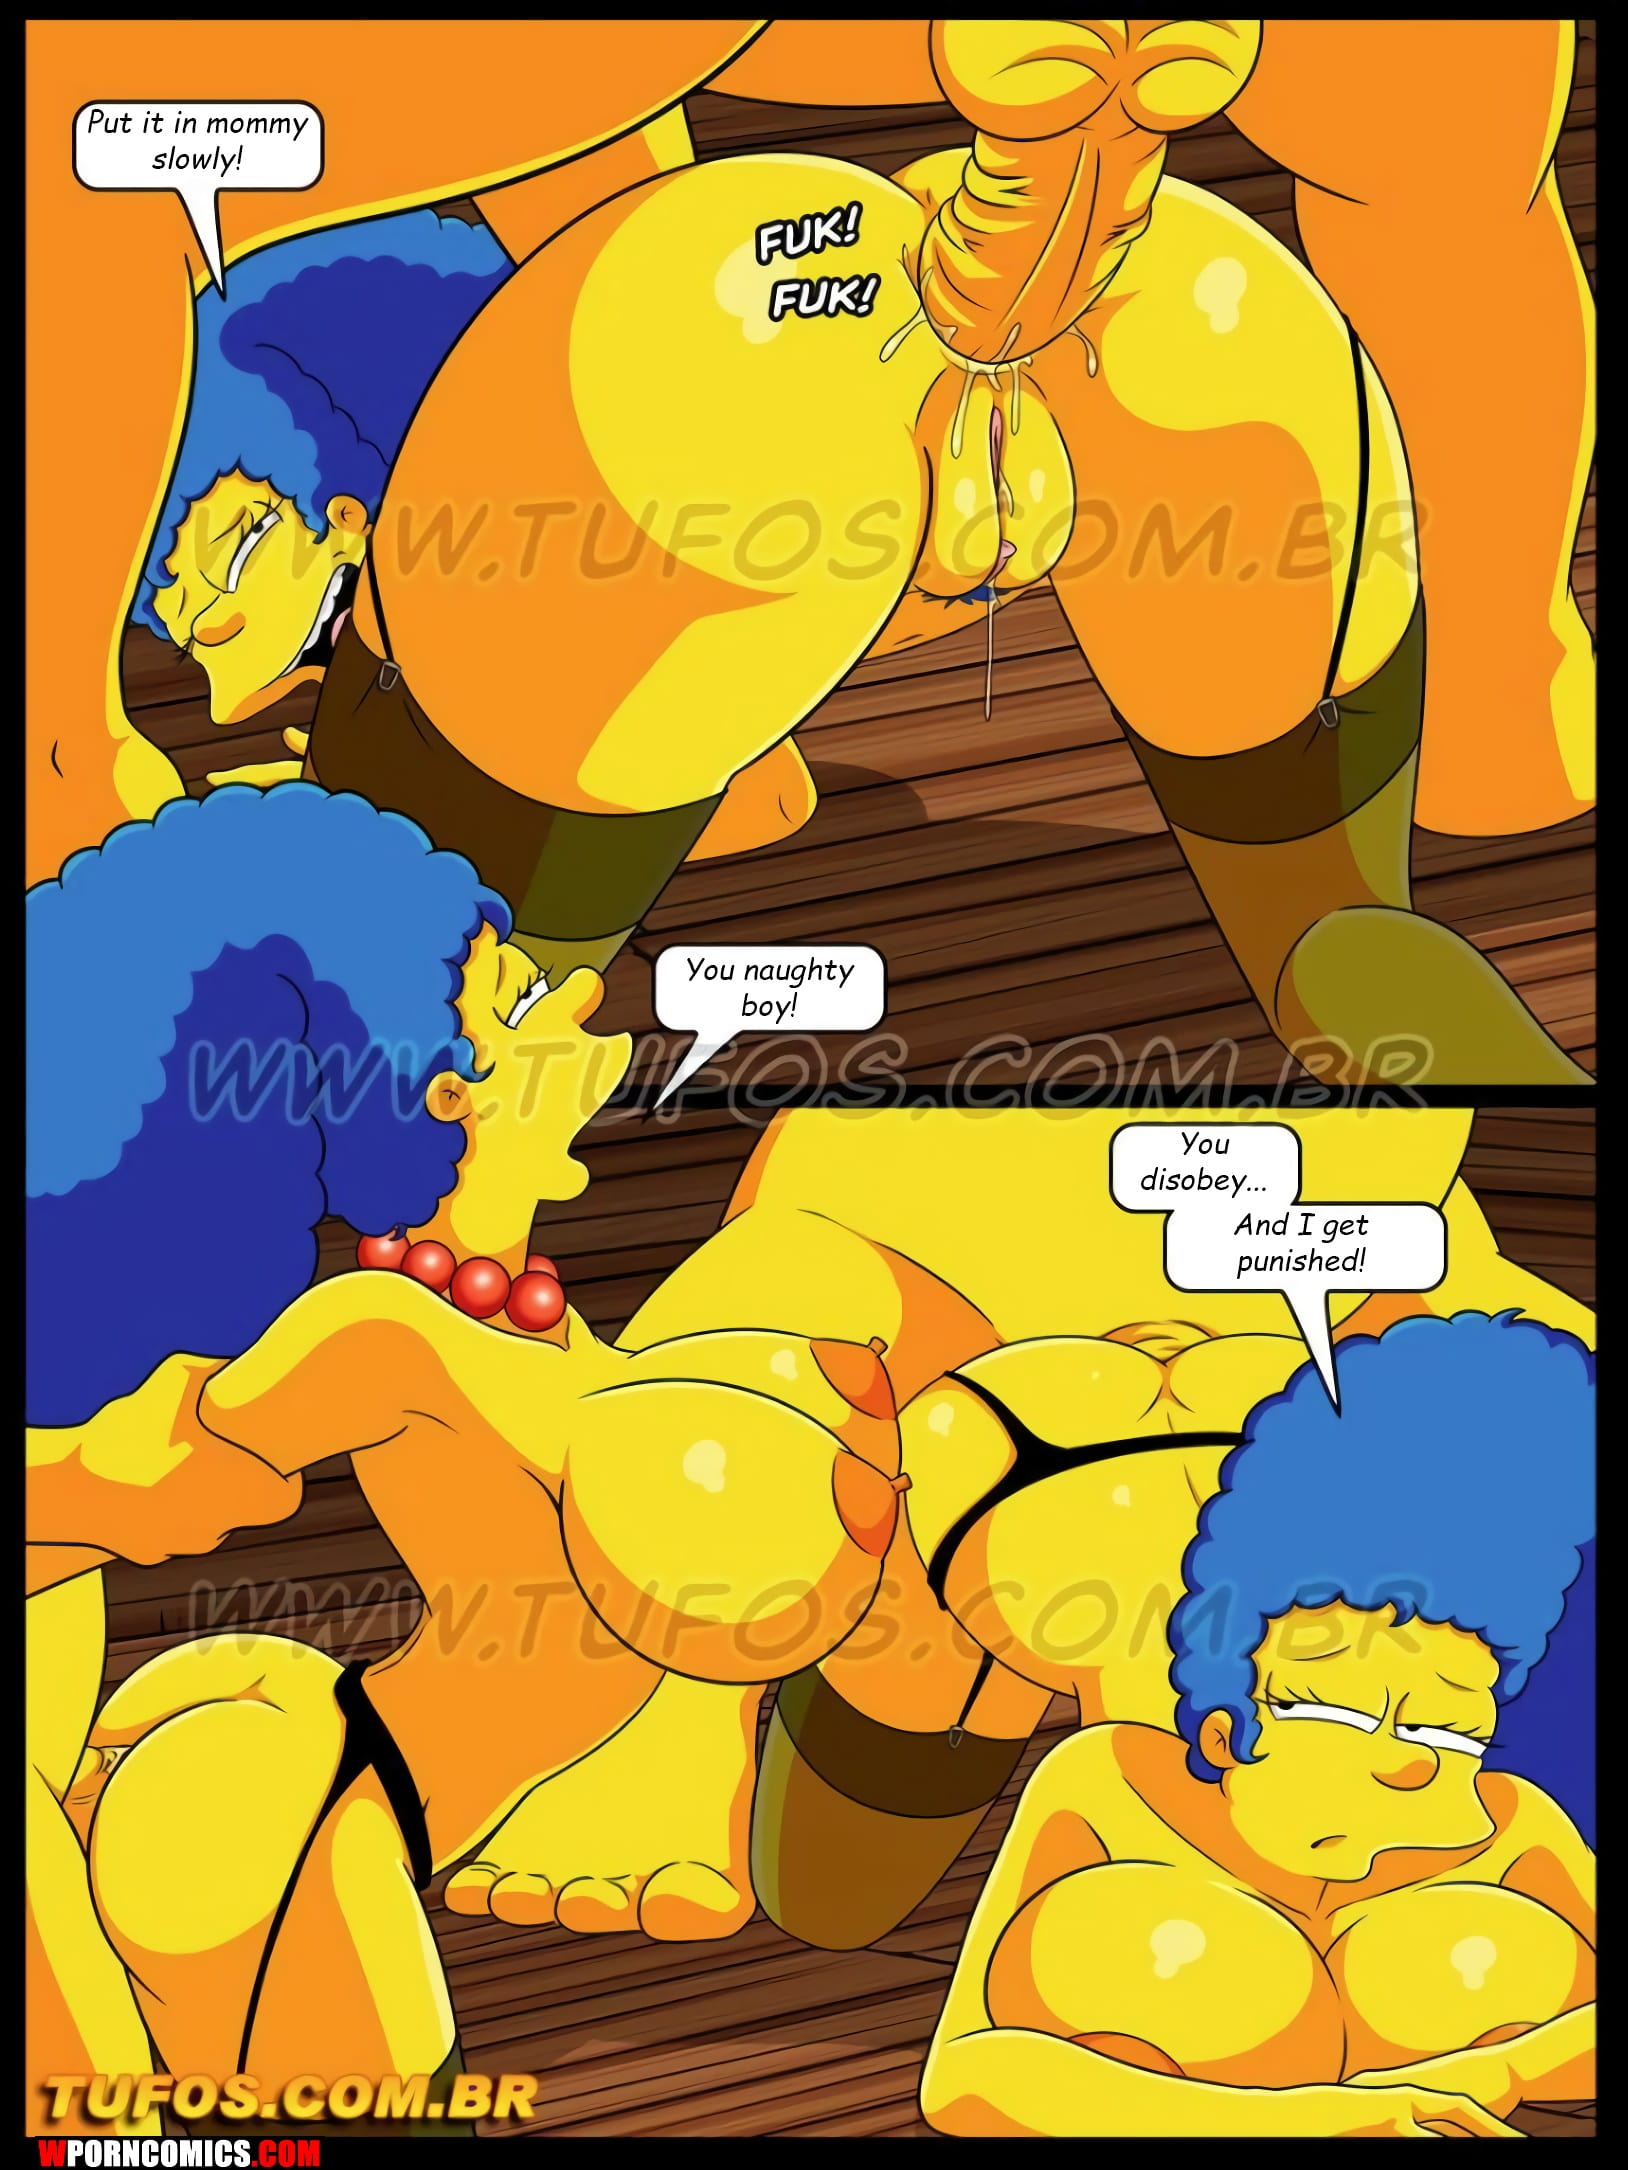 porn-comic-simpsons-part-12-fucking-in-the-treehouse-2020-03-19/porn-comic-simpsons-part-12-fucking-in-the-treehouse-2020-03-19-25790.jpg